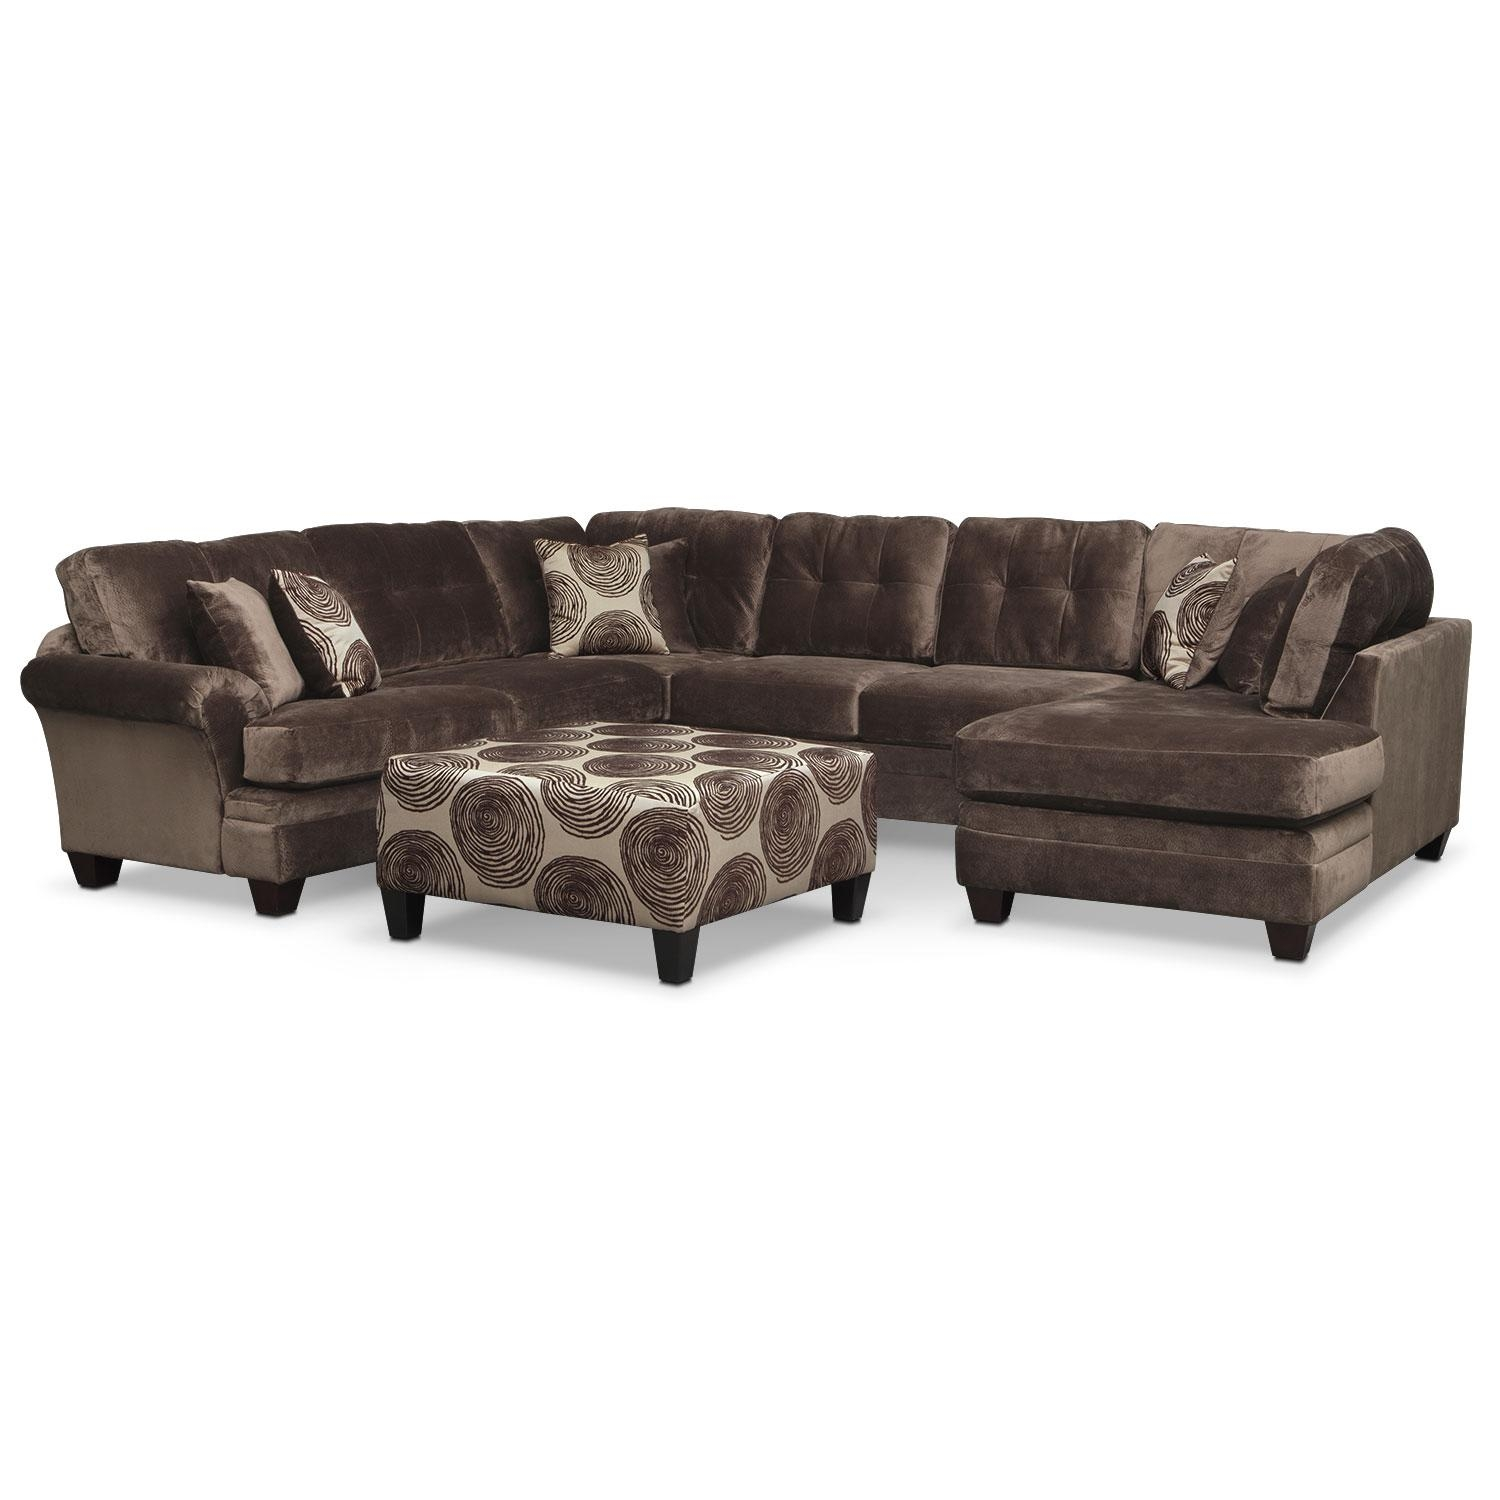 Living Room Furniture Packages | Value City Furniture For Value City Sofas (Image 6 of 20)